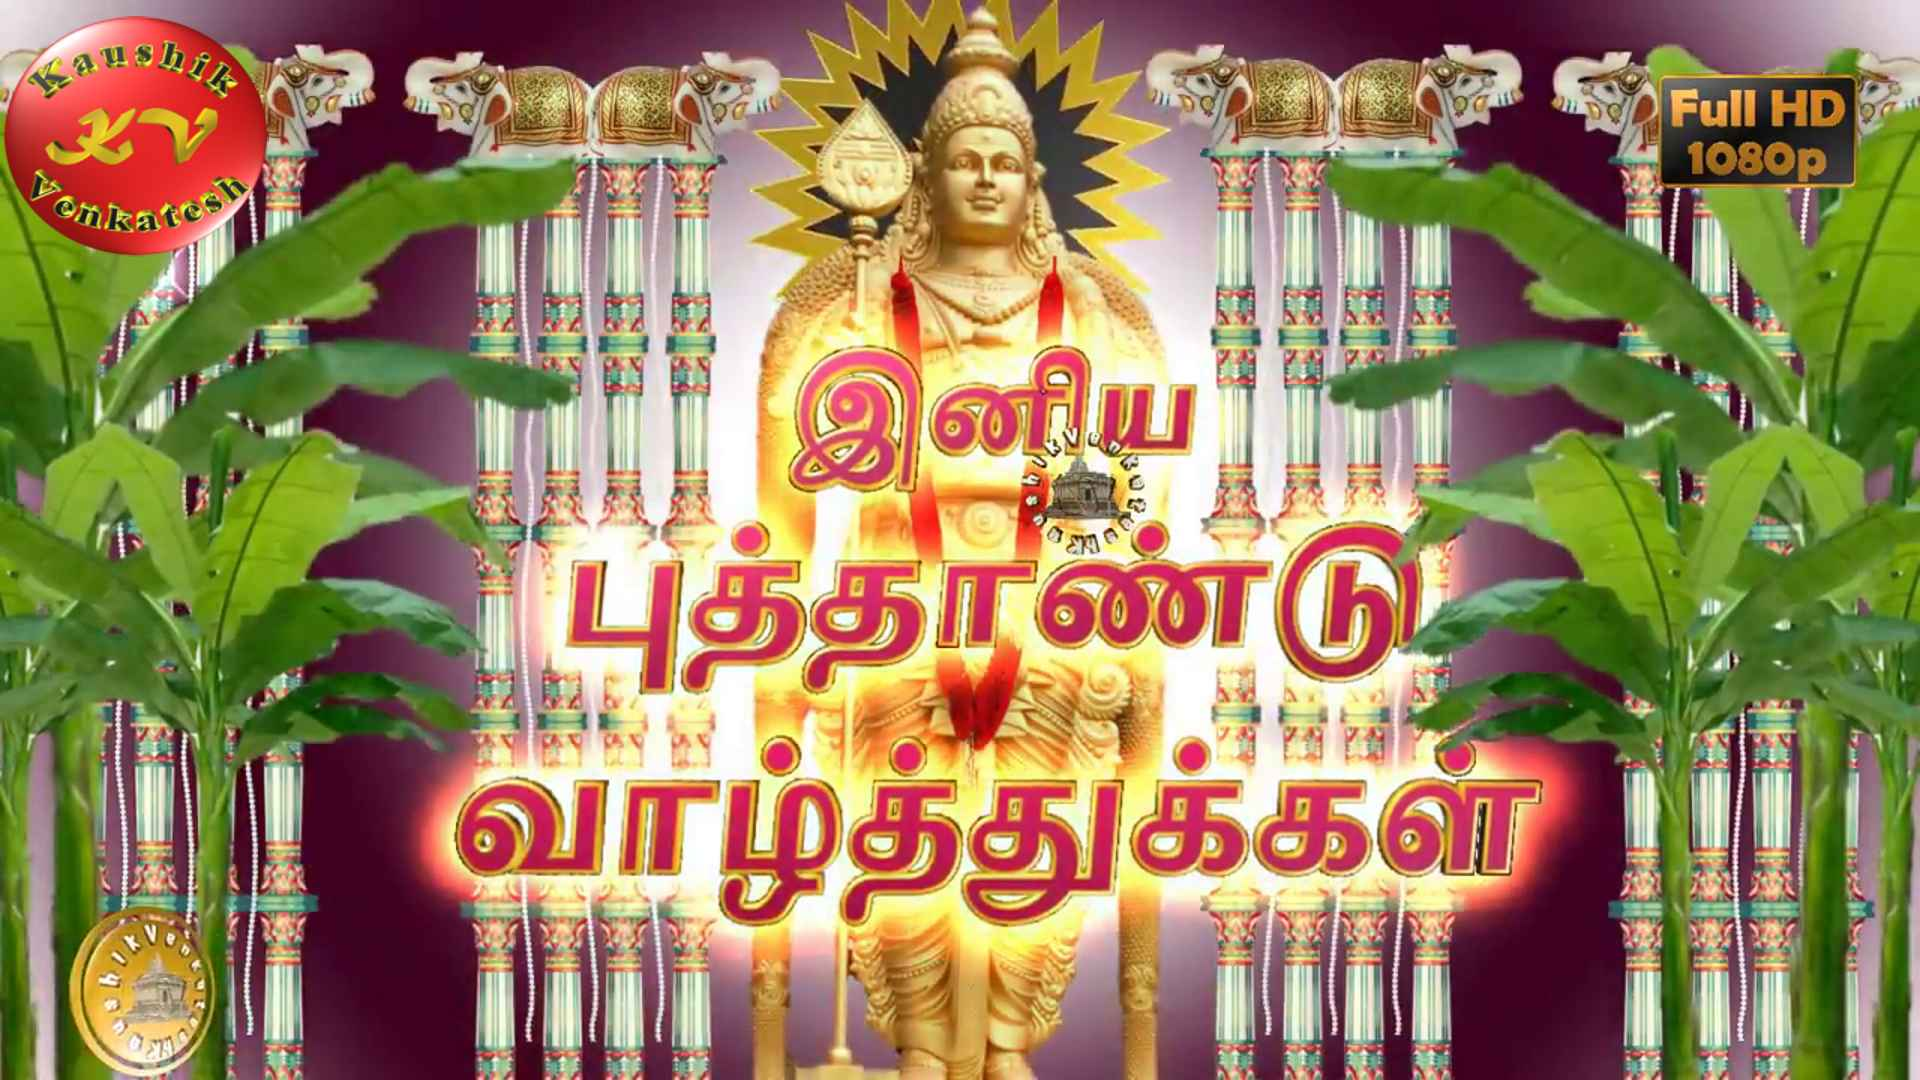 HD Images for Tamil New Year Festival